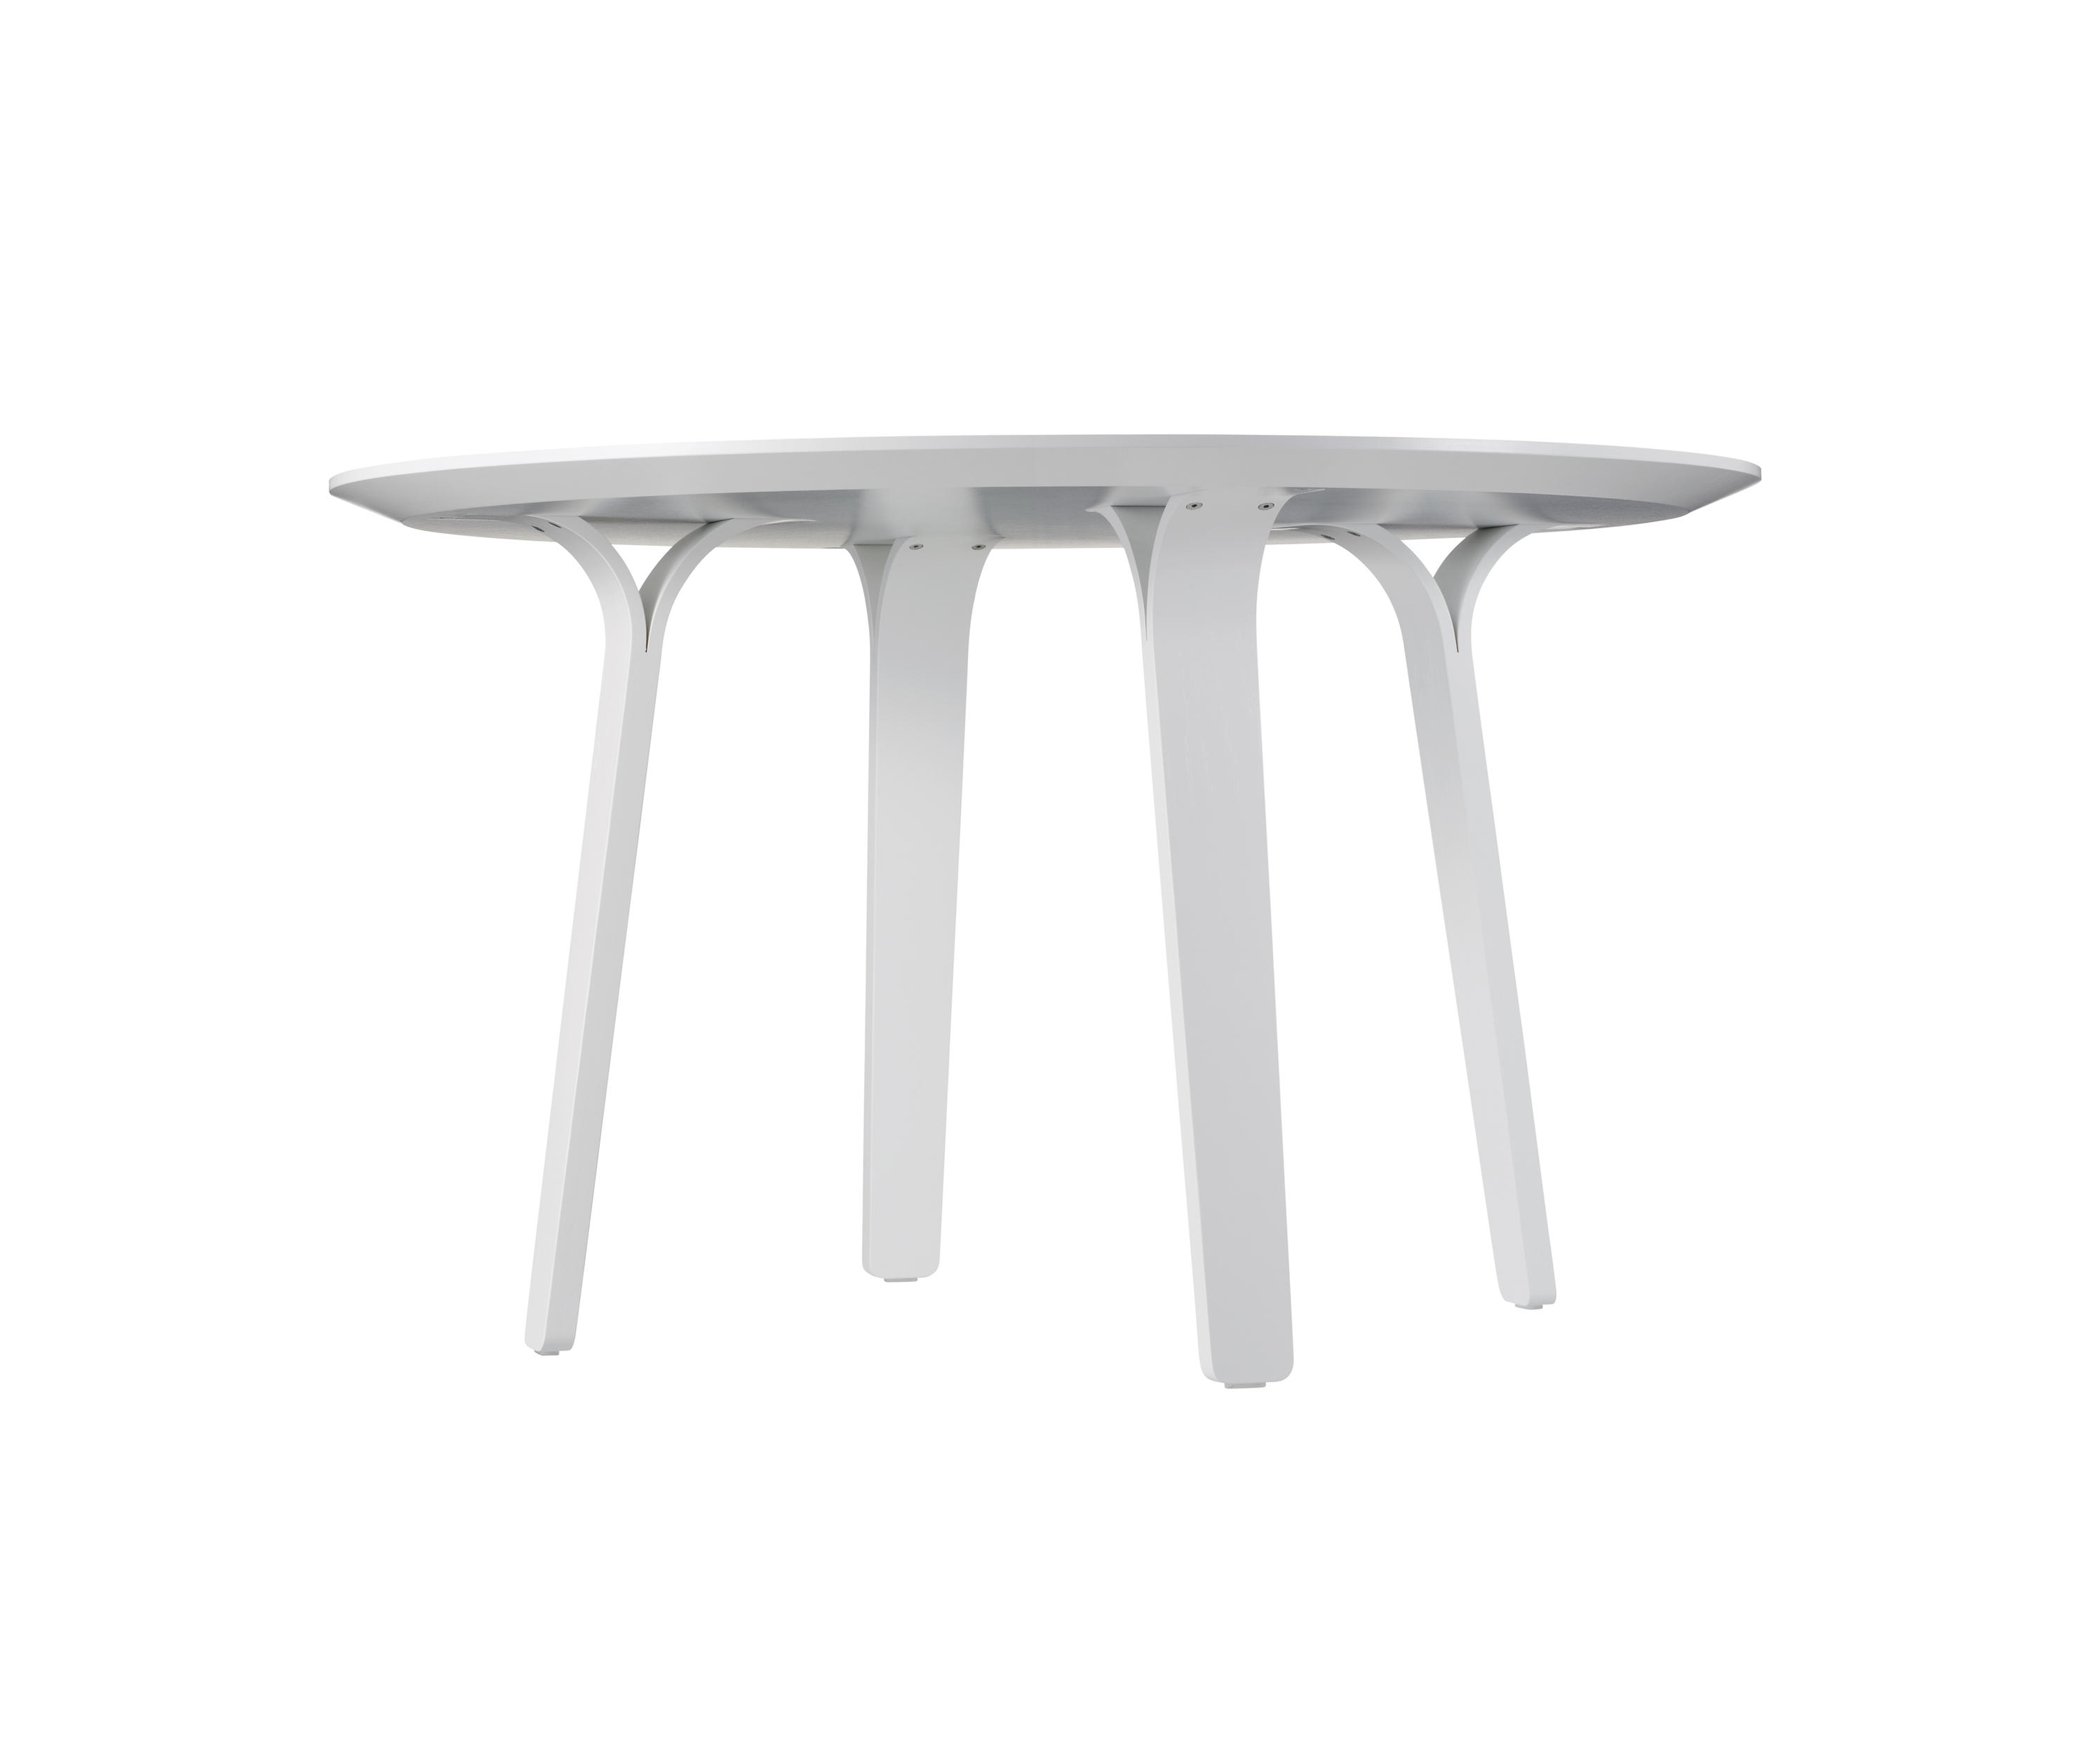 DIVIDO TABLE Restaurant tables from Swedese Architonic